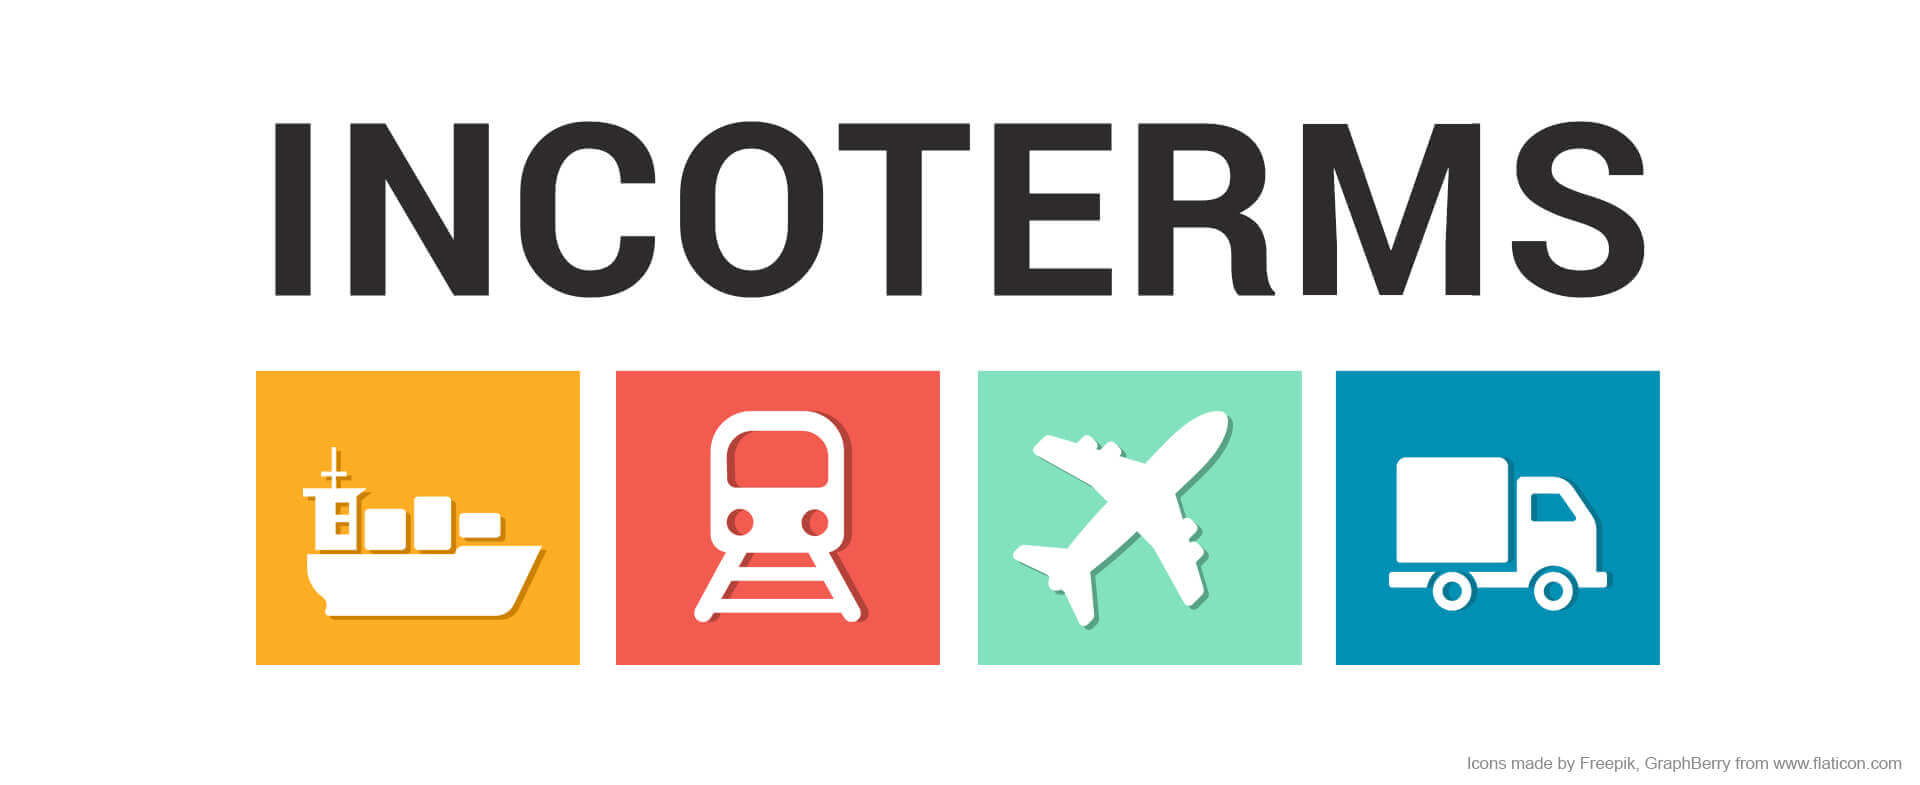 Understand the incoterms